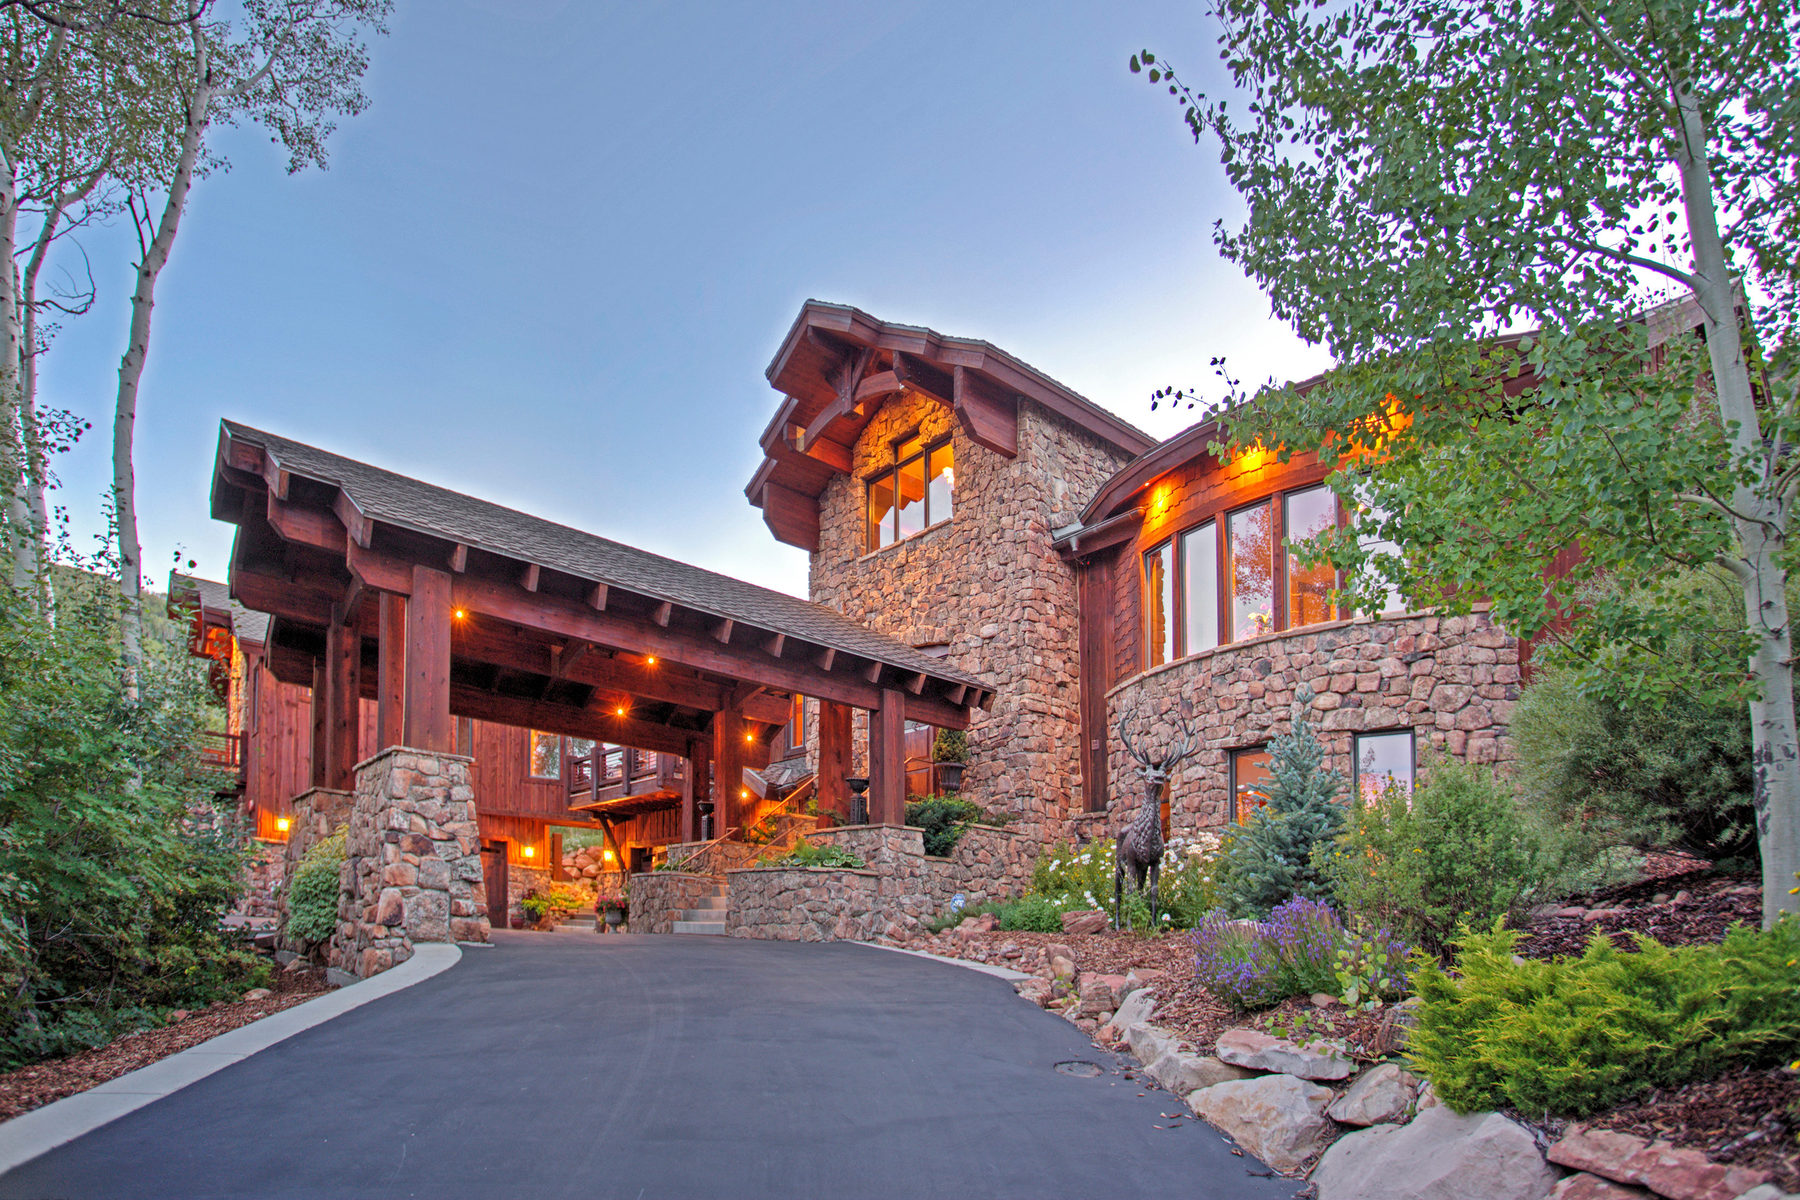 Single Family Home for Sale at Extraordinary Mountain Design 4820 Bear View Dr Park City, Utah 84098 United States